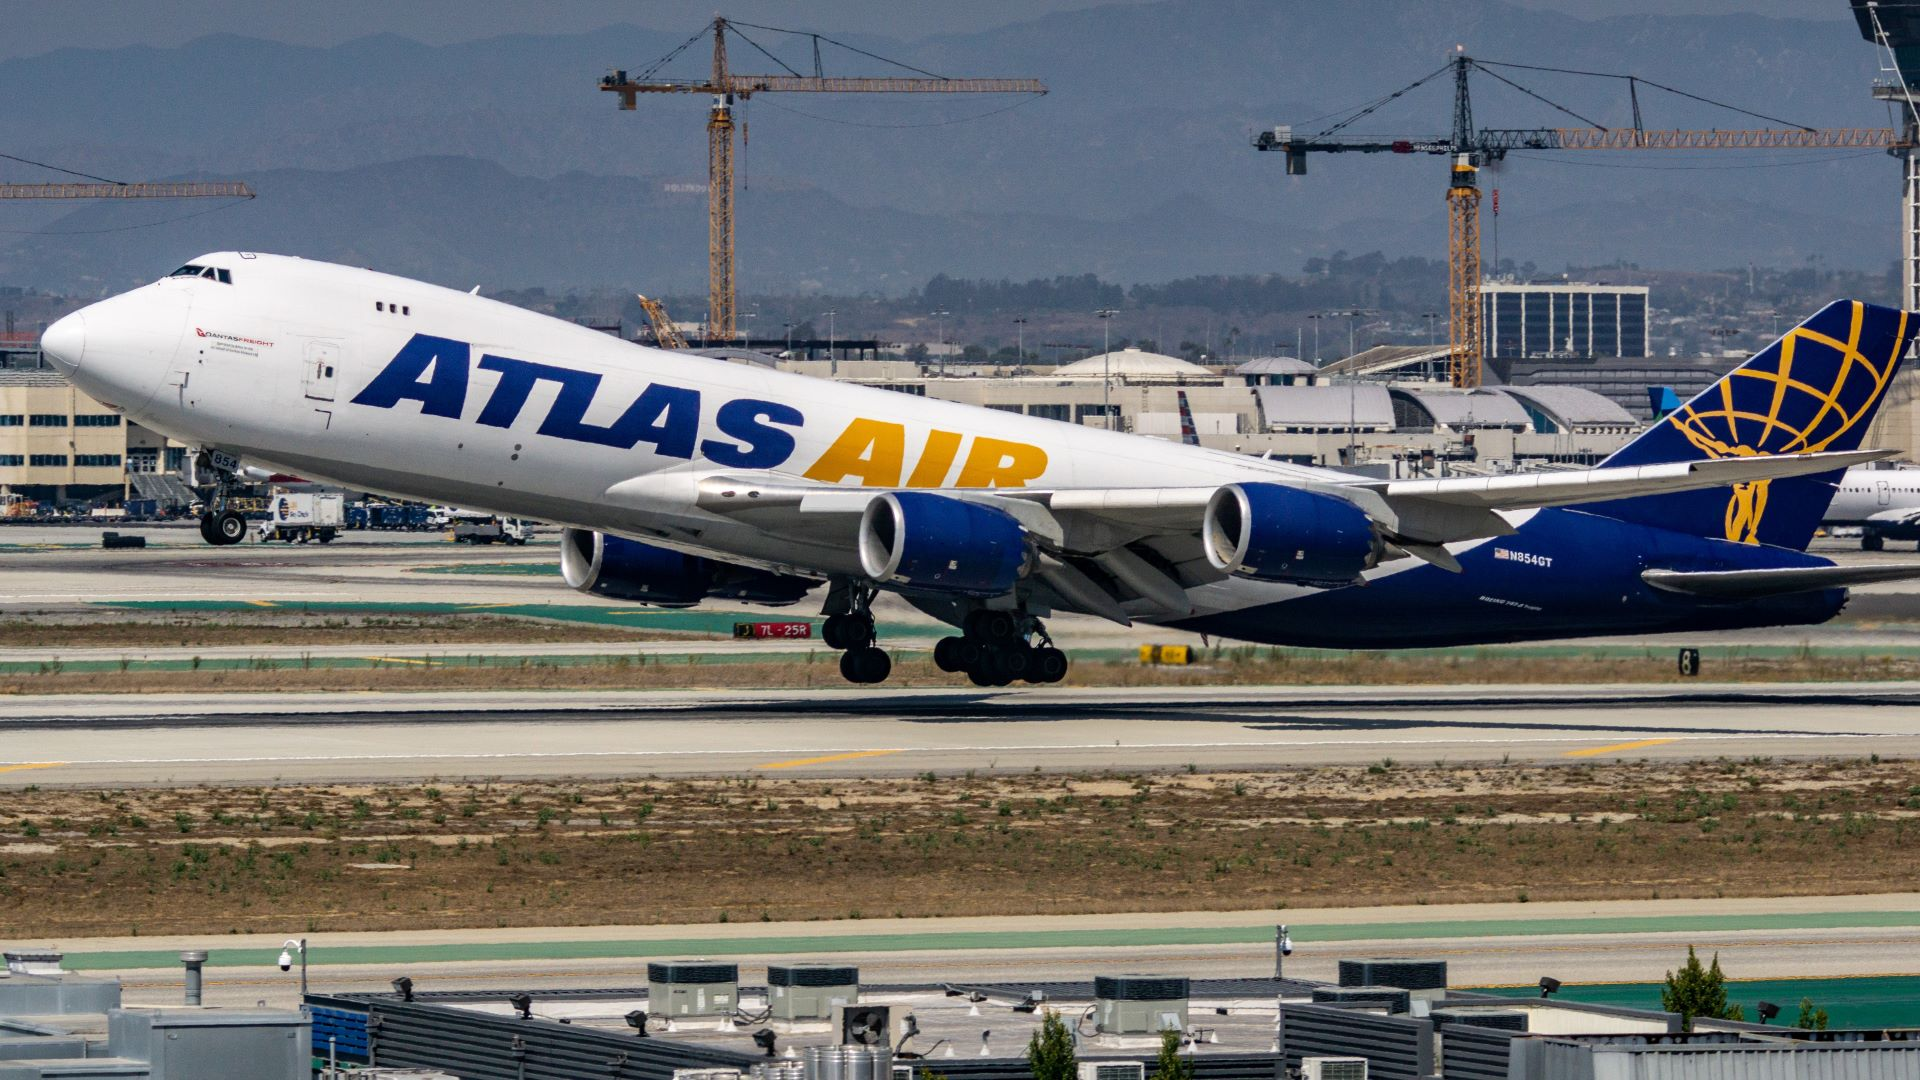 An Atlas Air jumbo cargo jet takes off, with front wheel in air. The plane is white, with purple and gold lettering.